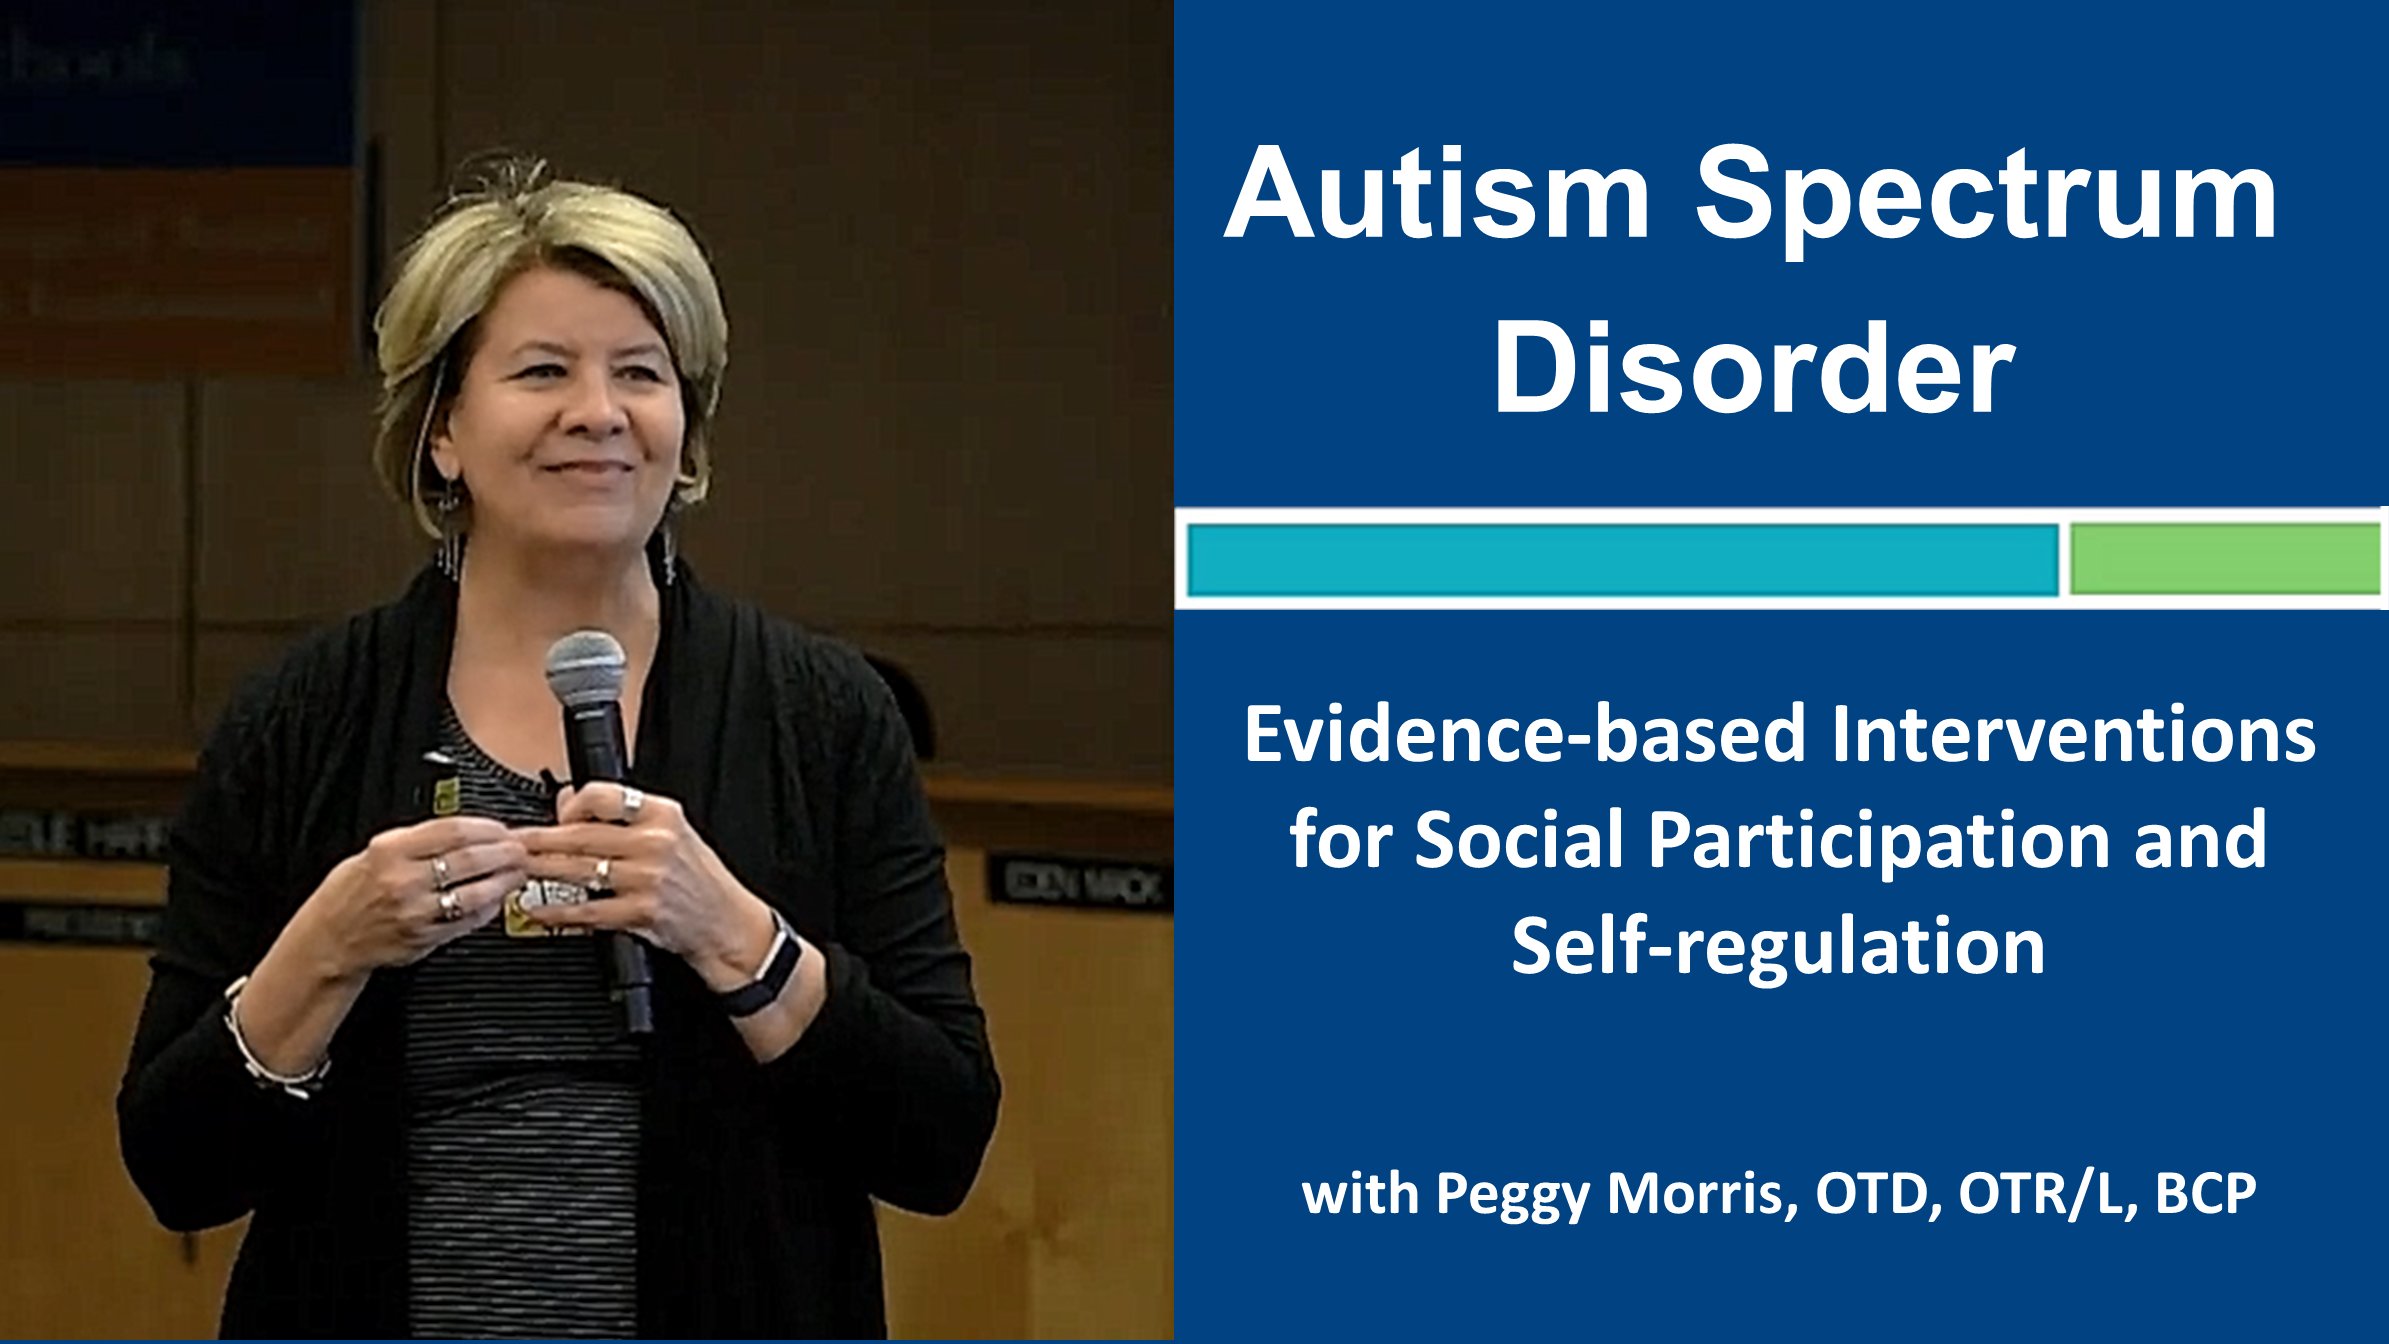 Webinar 1: Evidence-based Interventions for Social Participation and Self-regulation with Peggy Morris, OTD, OTR/L BCP